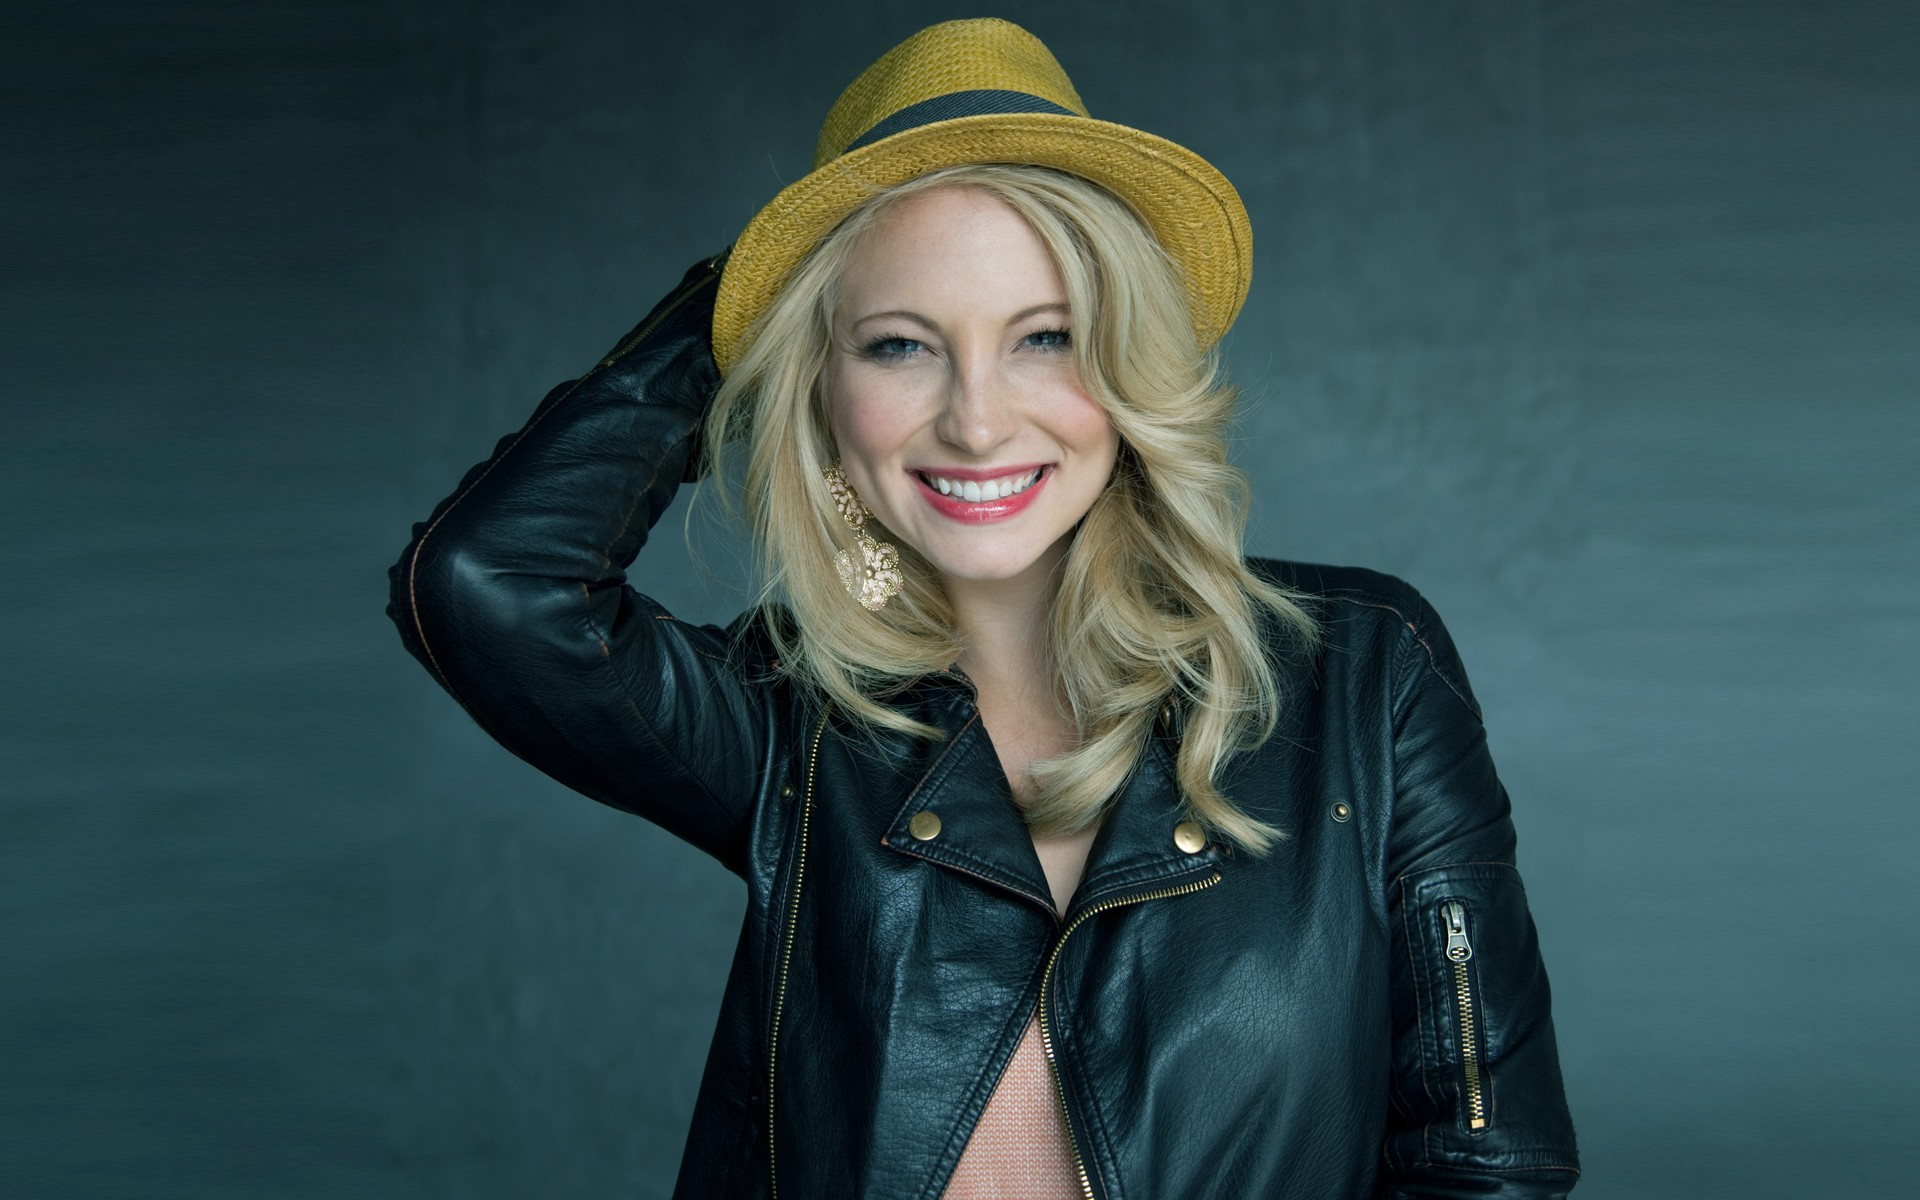 1920x1200 - Candice Accola Wallpapers 9